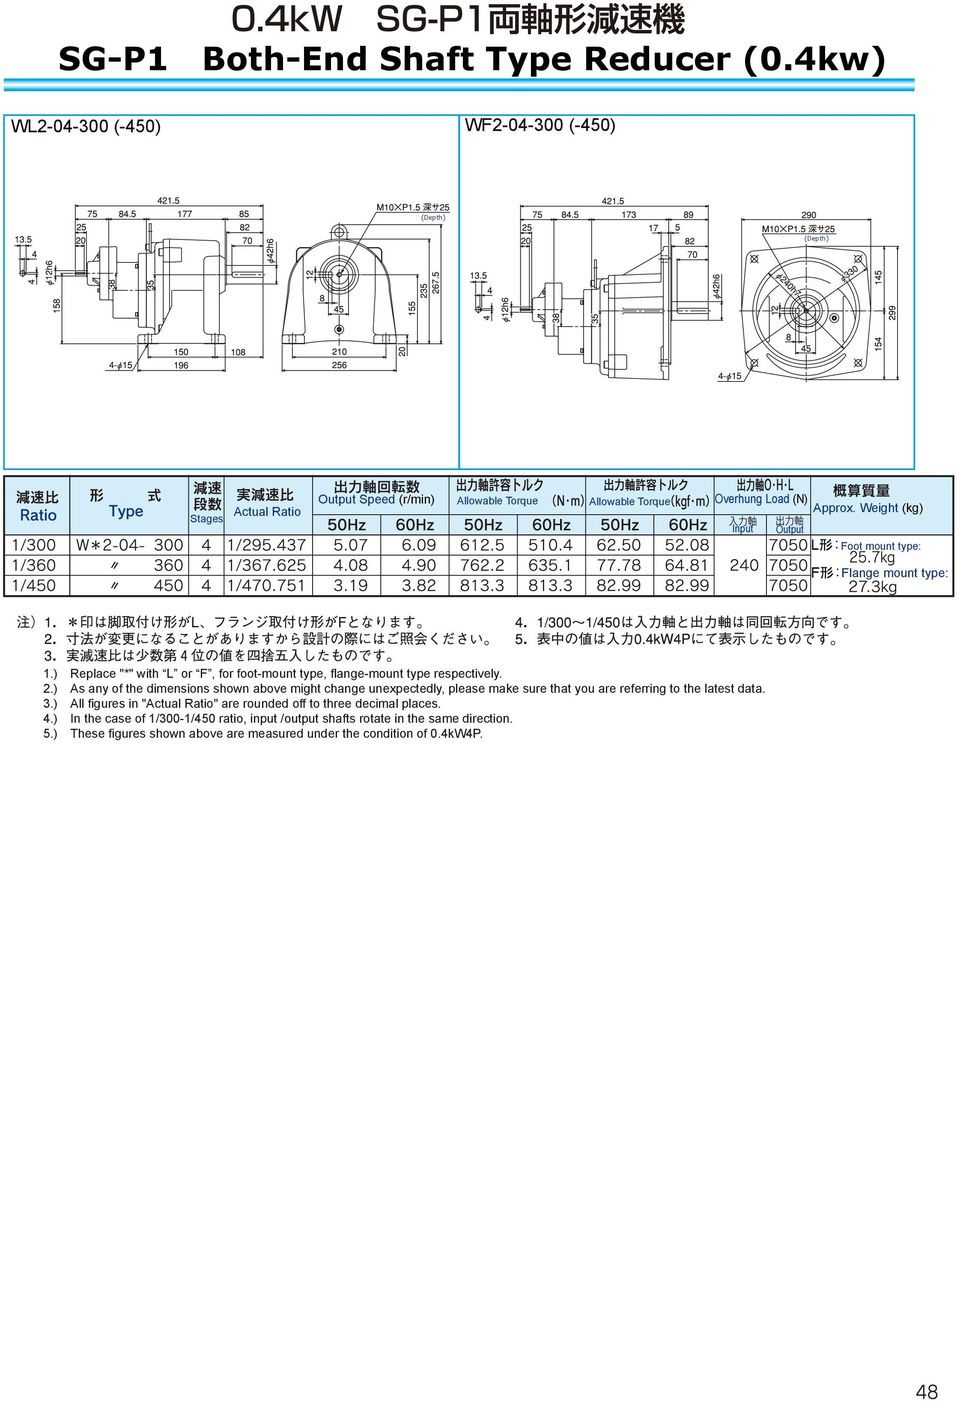 ) In the case of 1/300-1/450 ratio, input /output shafts rotate